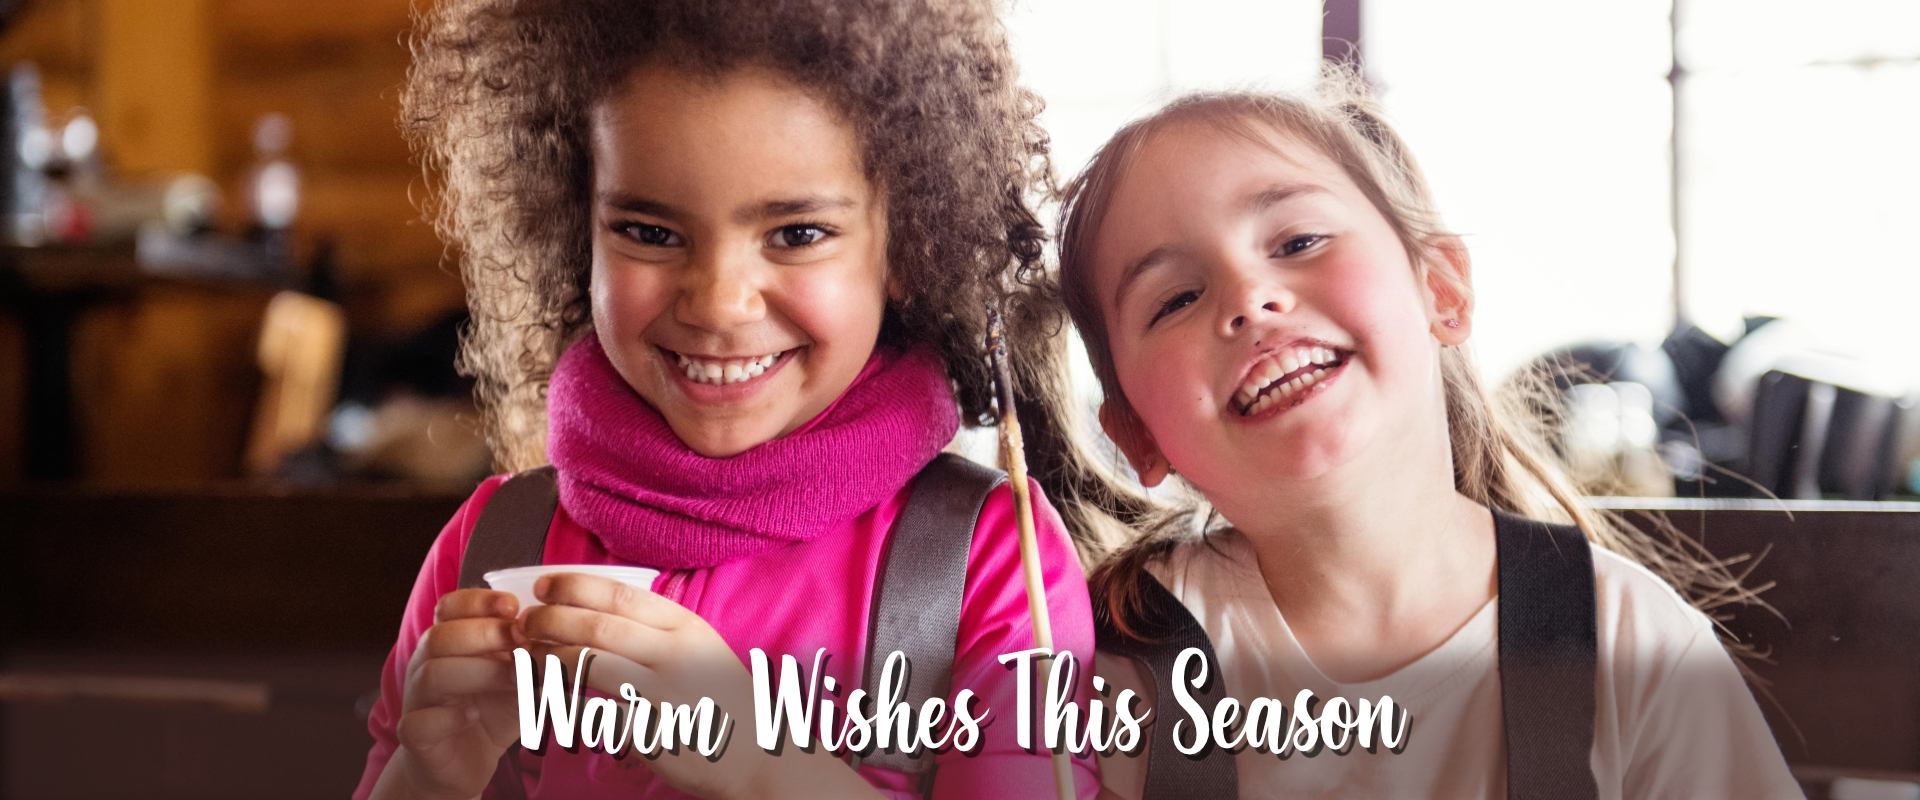 Warm Wishes image with two little girls smiling Banner